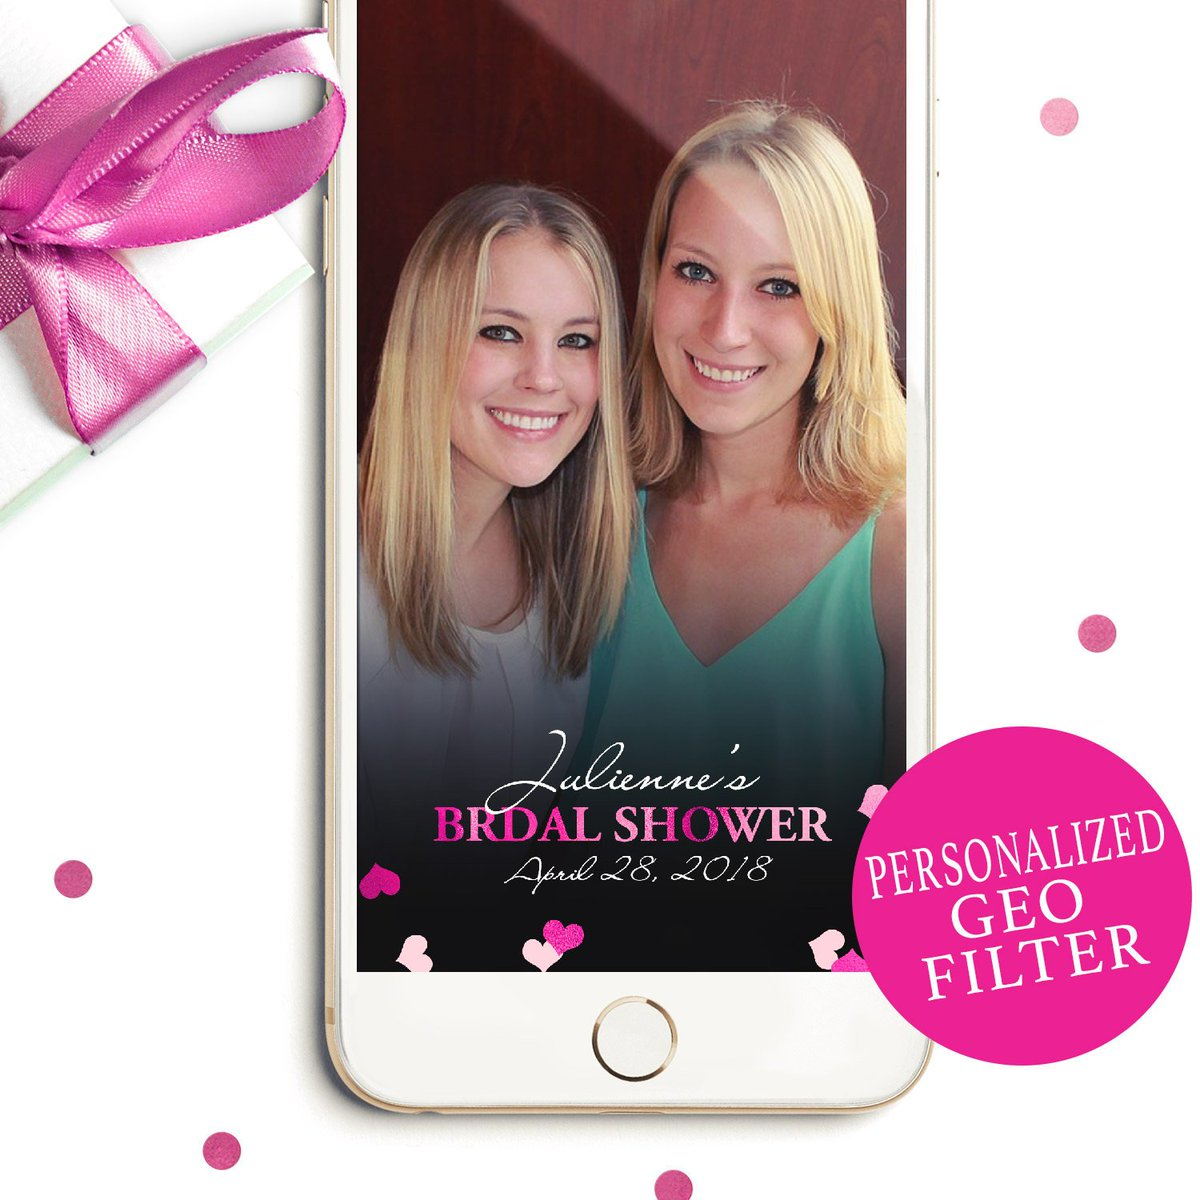 Hot Pink Confetti Bridal Shower Geofilter #BridalShower #Geofilter #SnapchatFilter  http:// etsy.me/2s6Kfh4  &nbsp;  <br>http://pic.twitter.com/fhQM0CRsqL